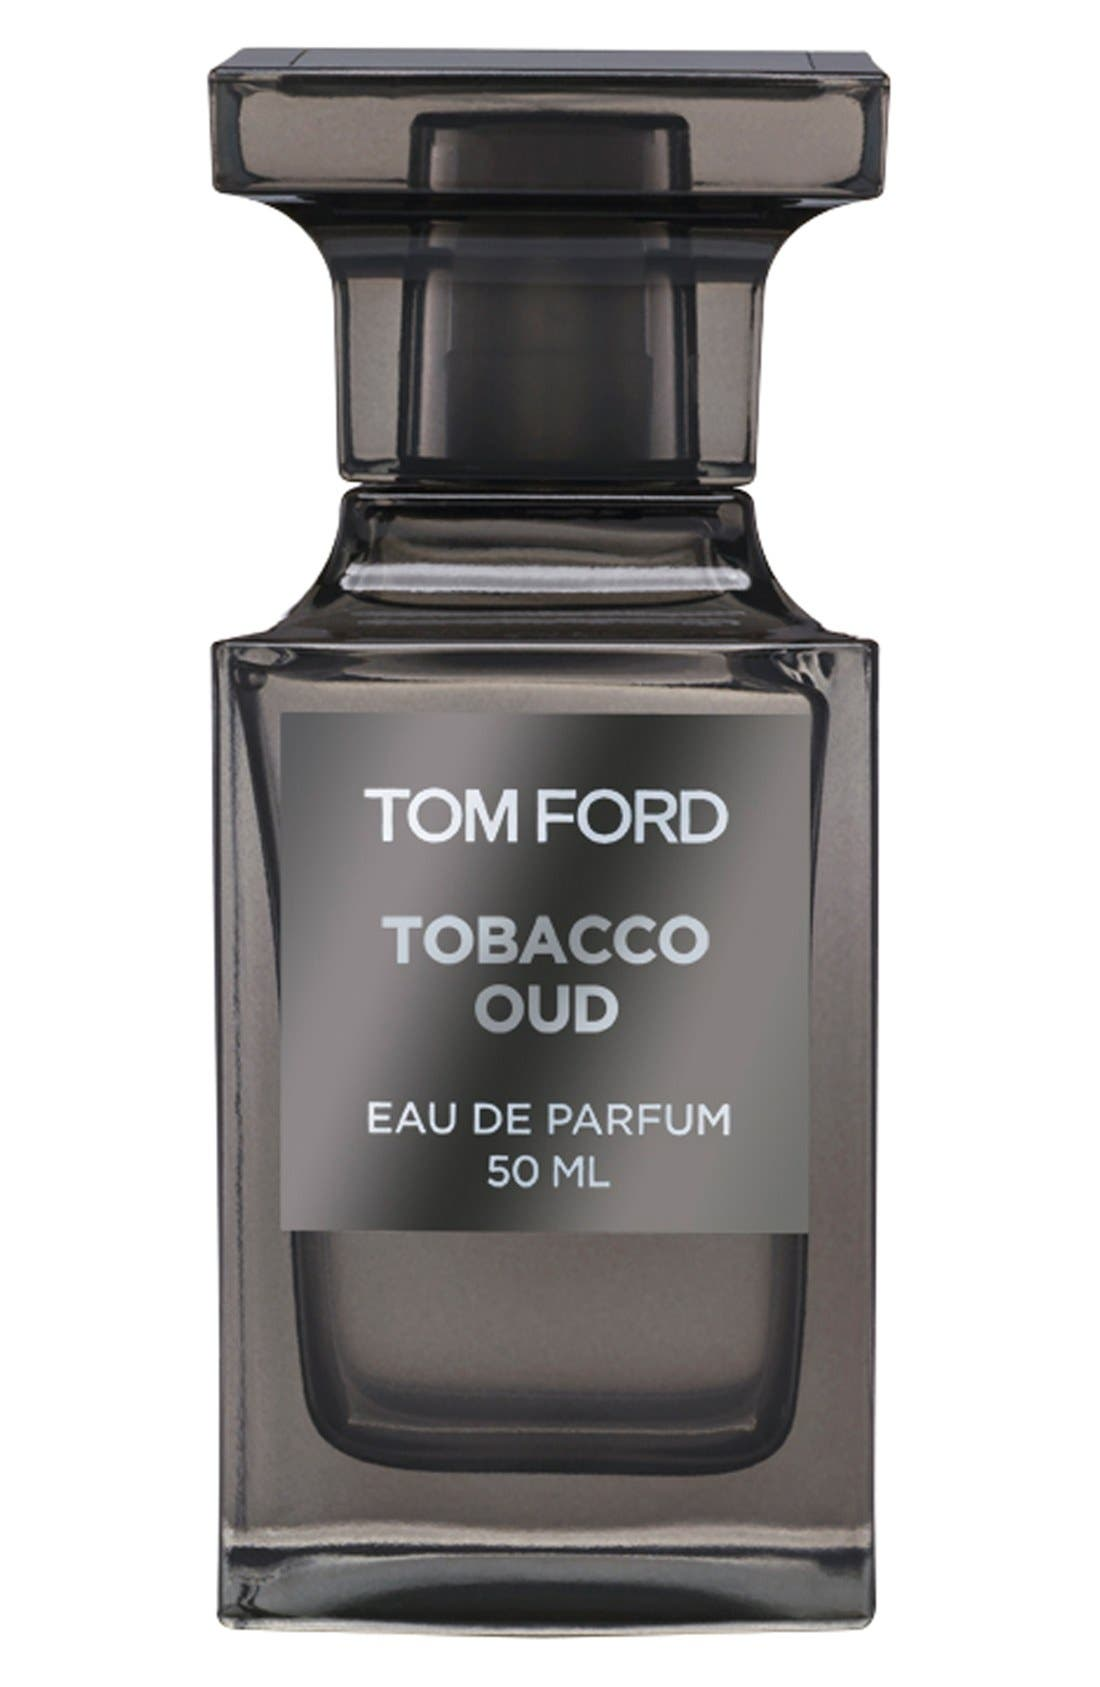 Tom Ford Private Blend Tobacco Oud Eau de Parfum